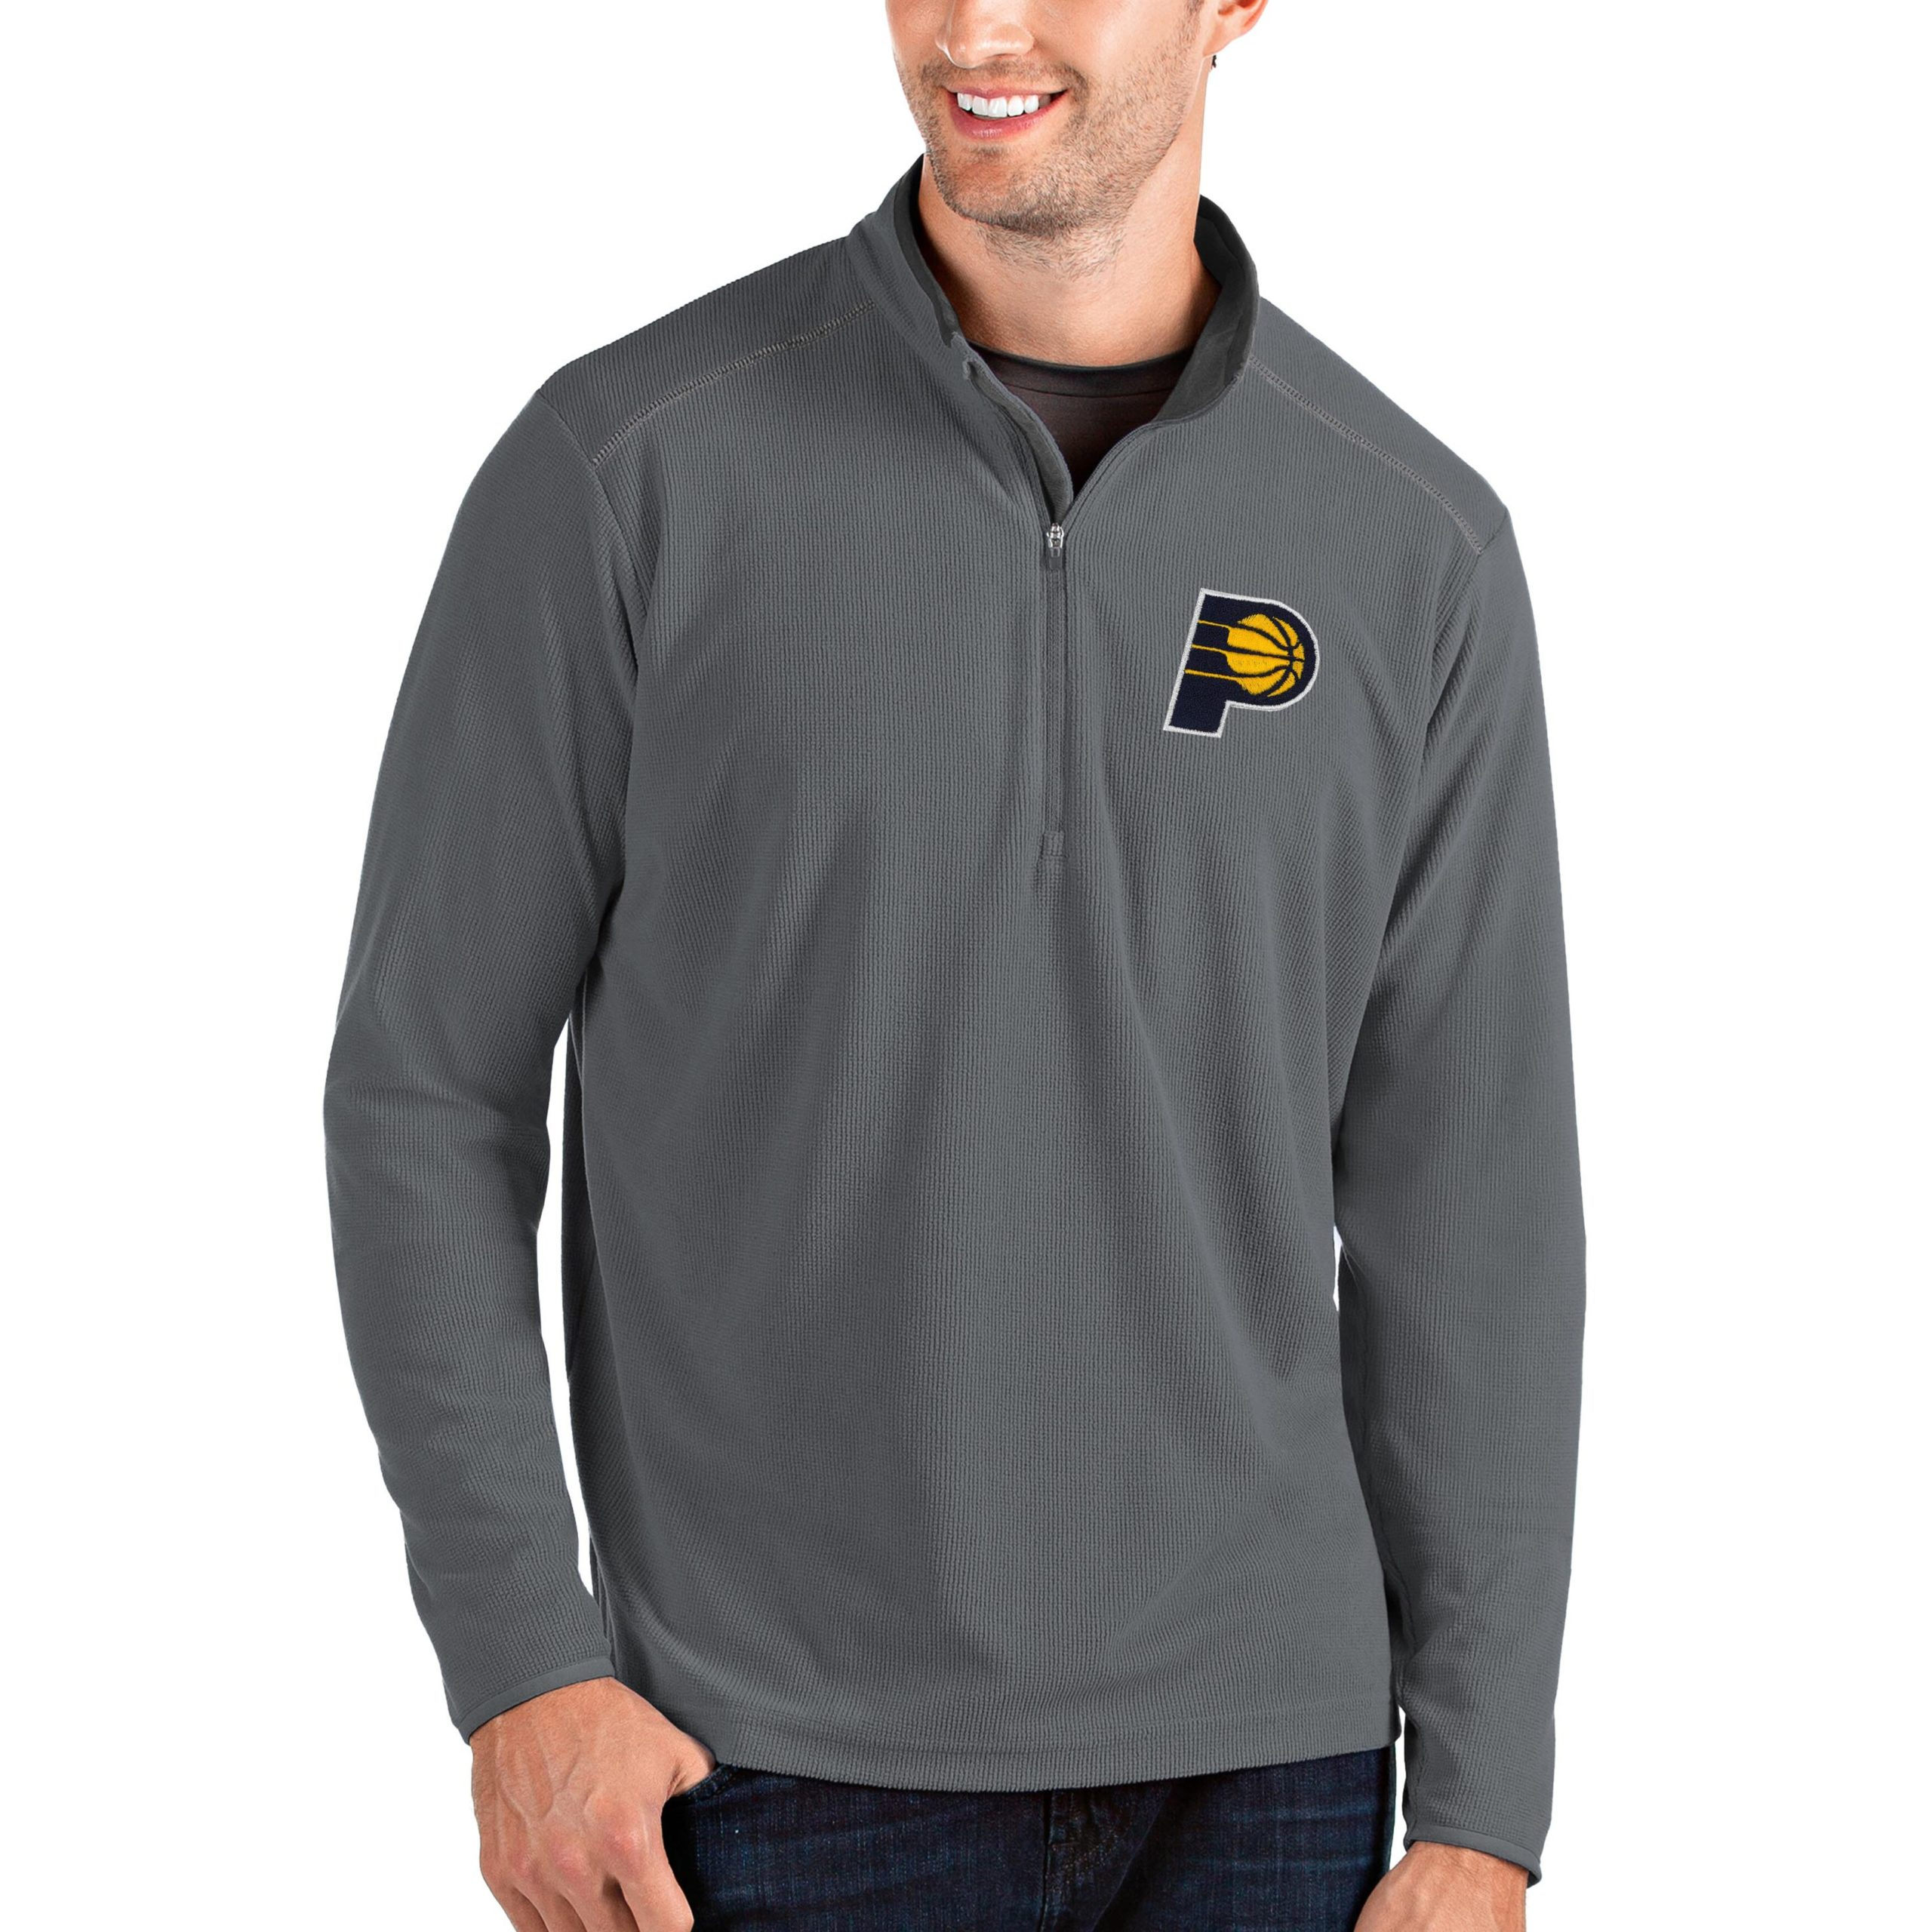 Indiana Pacers Antigua Big & Tall Glacier Quarter-Zip Pullover Jacket - Gray/Gray